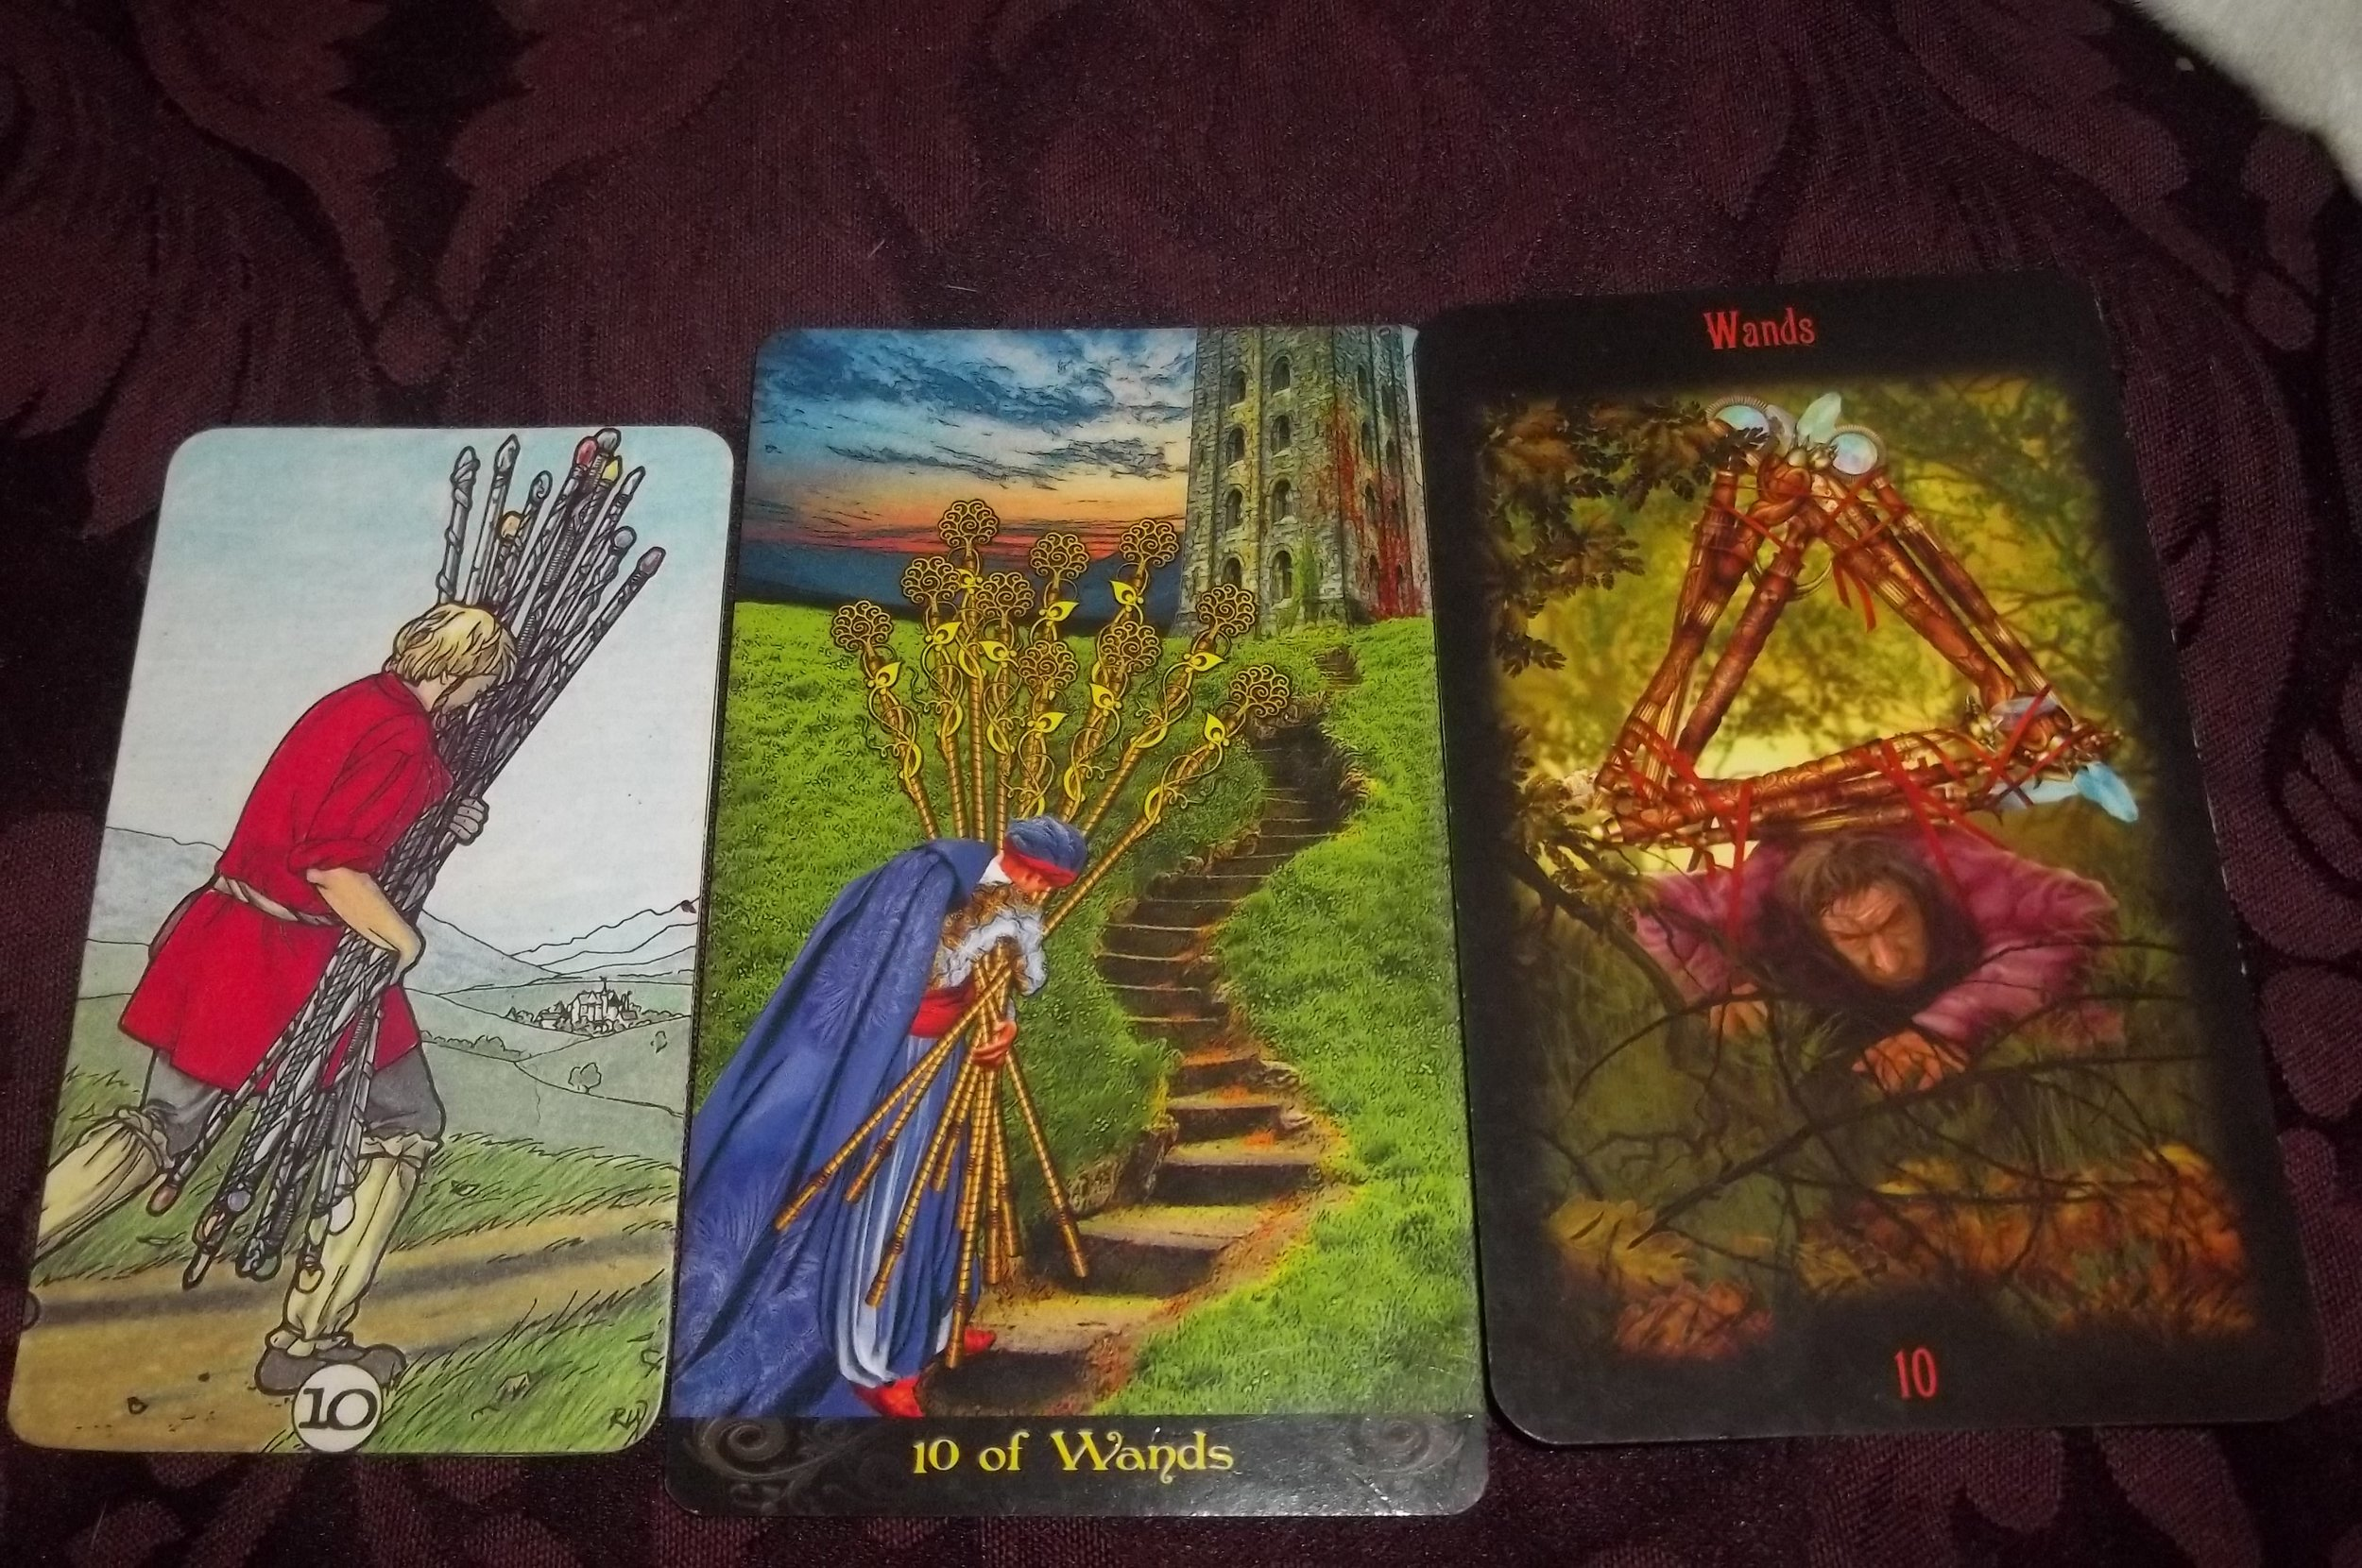 Ten of Wands depicted in the Robin Wood Tarot, Tarot Illuminati, and Tarot of Divine Legacy